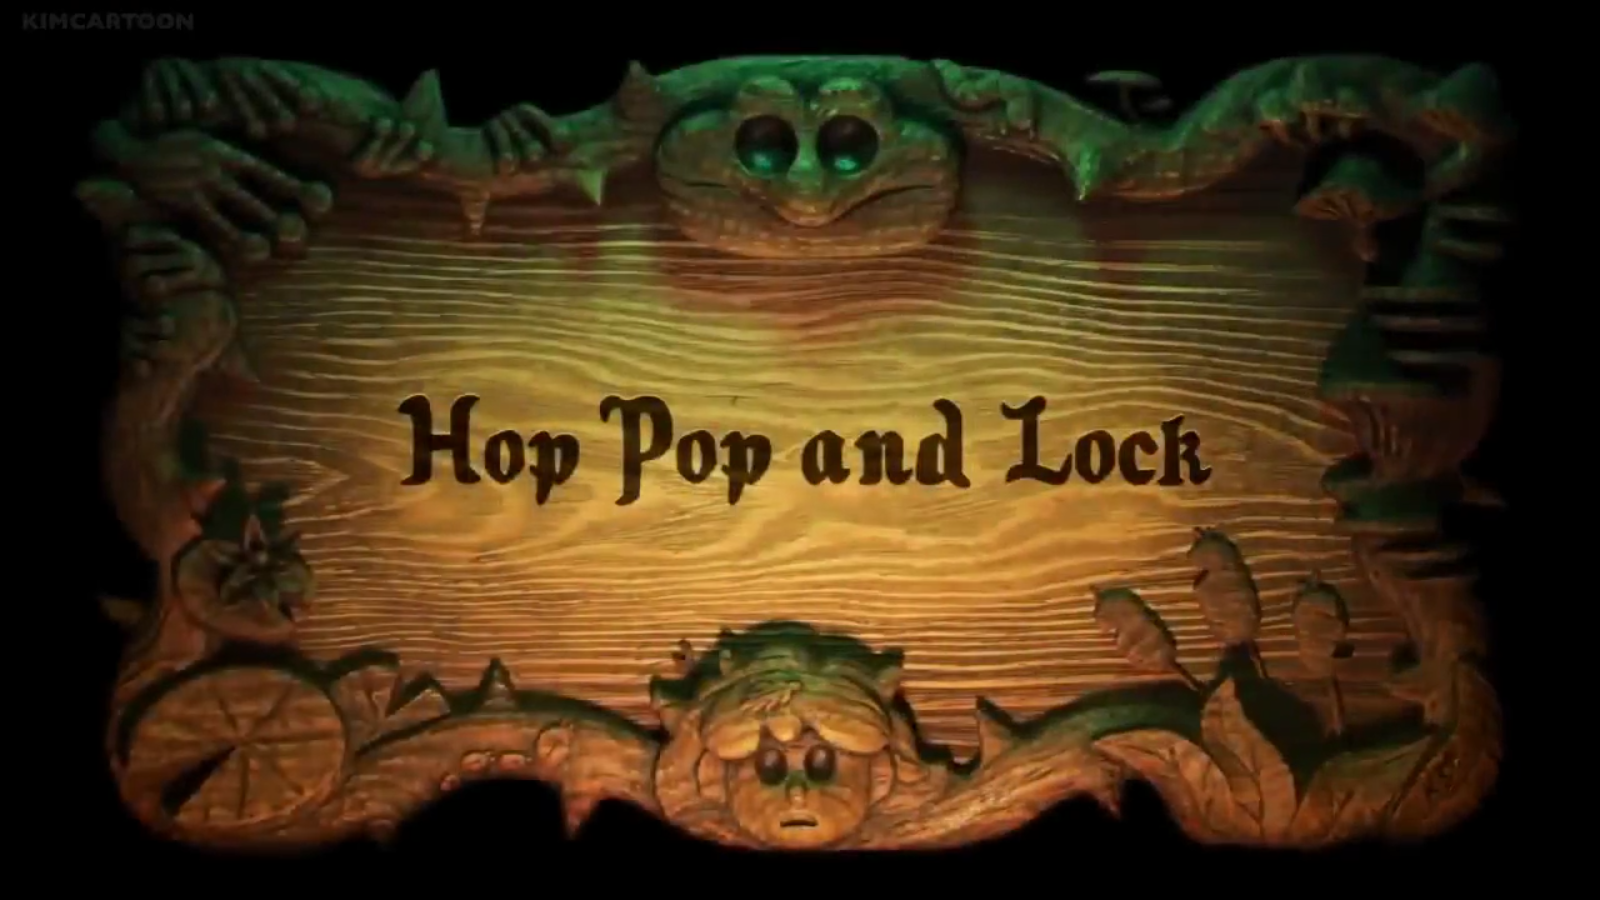 Hop Pop and Lock